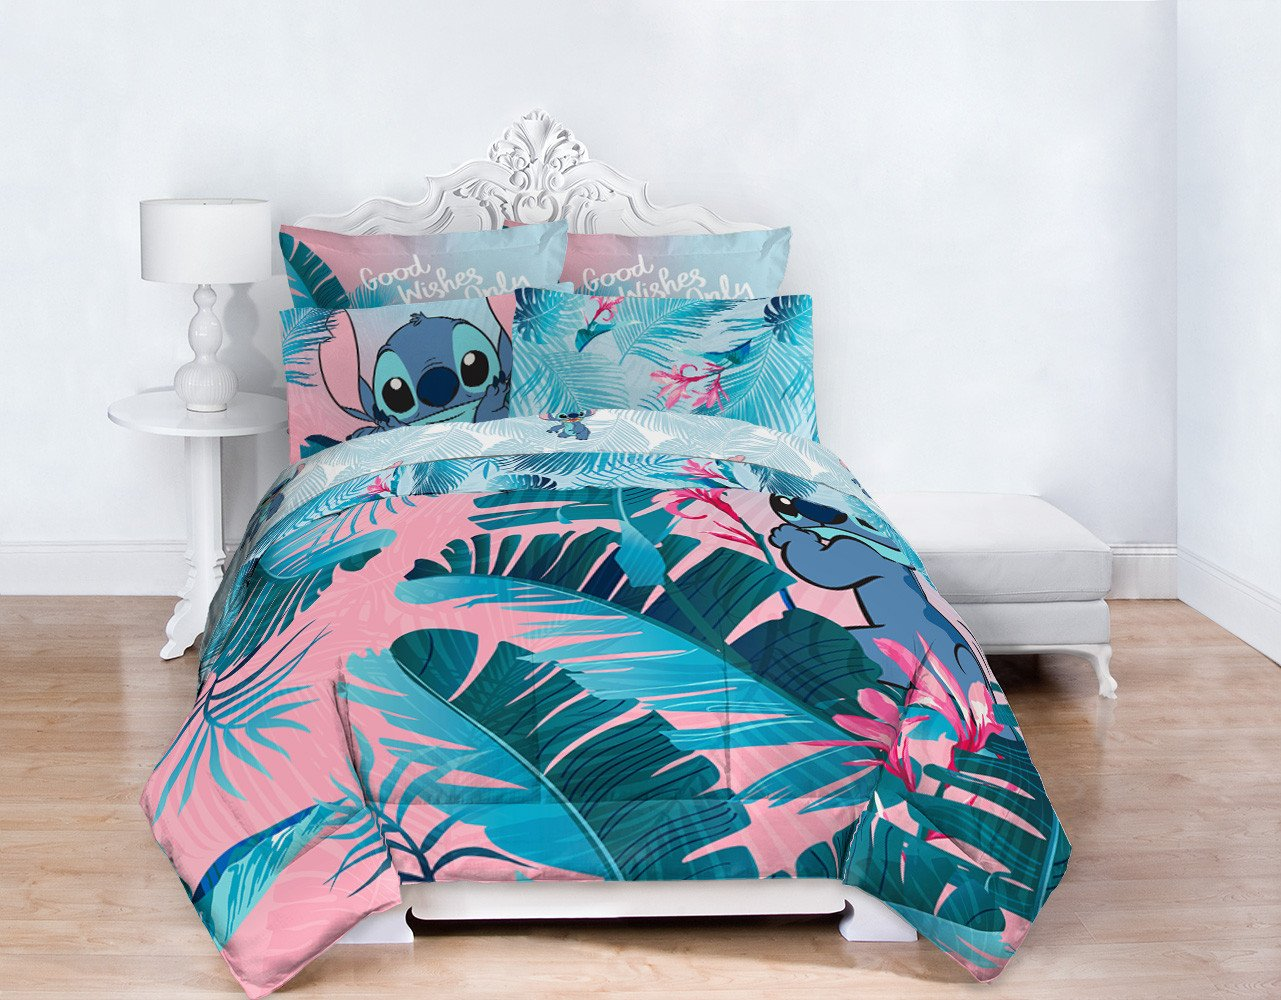 Walmart Bedroom Set Queen Awesome Lilo & Stitch Floral Fun Queen Bed Set Walmart